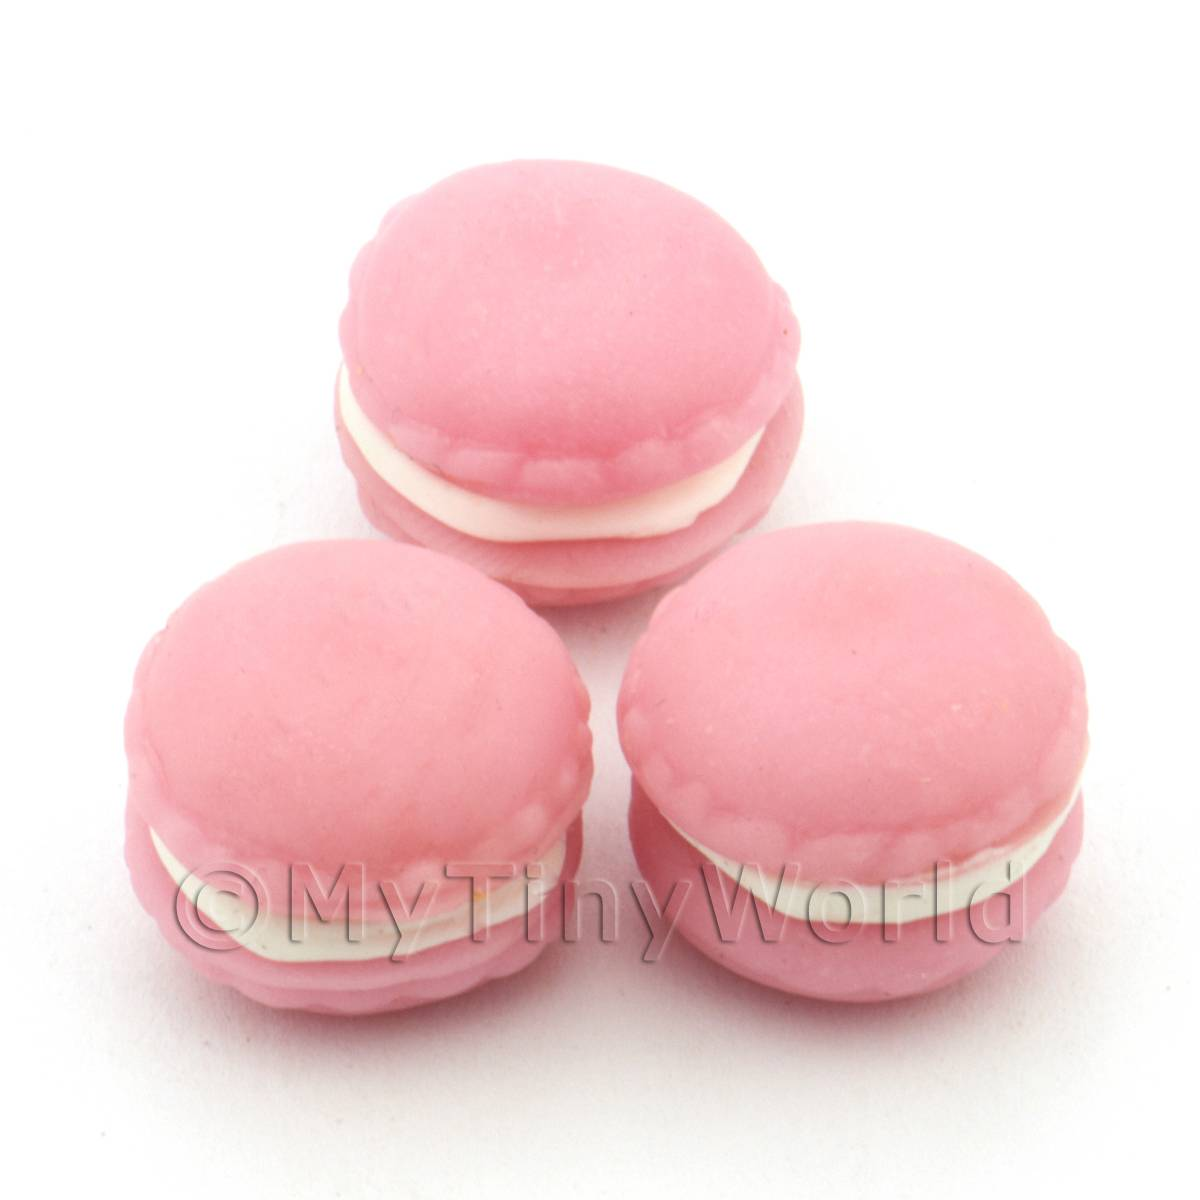 Handmade Pink Macaroon For Jewellery And Charms